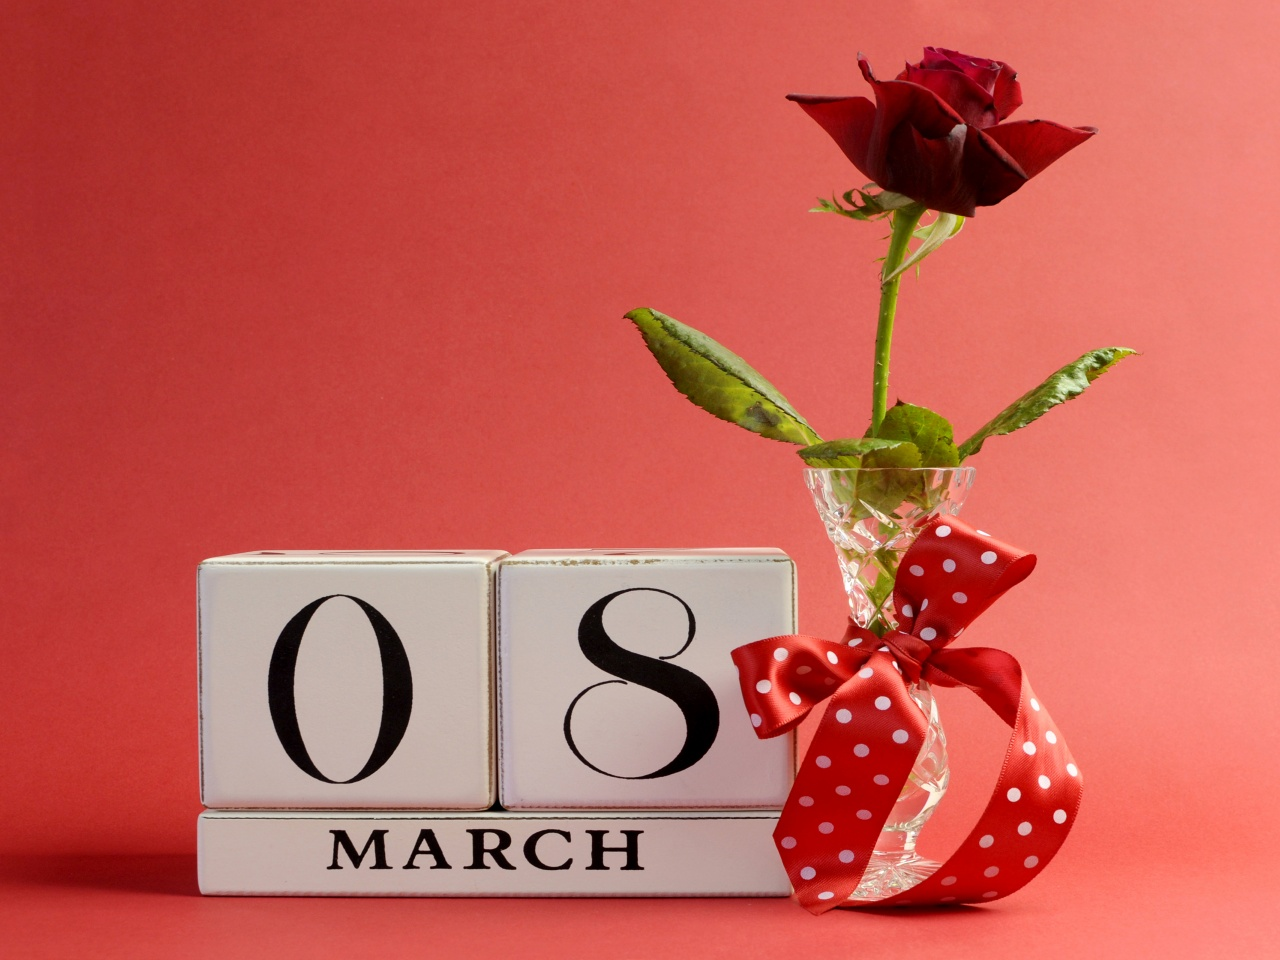 March 8 Roses Holidays